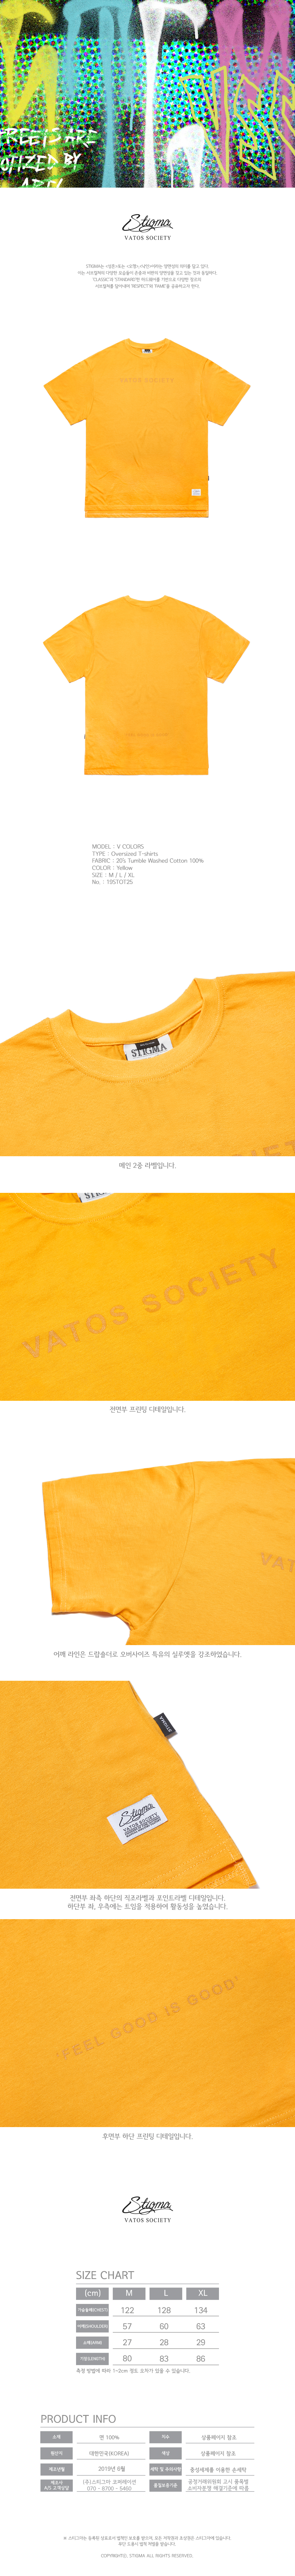 스티그마 STIGMA V COLORS OVERSIZED T-SHIRTS YELLOW